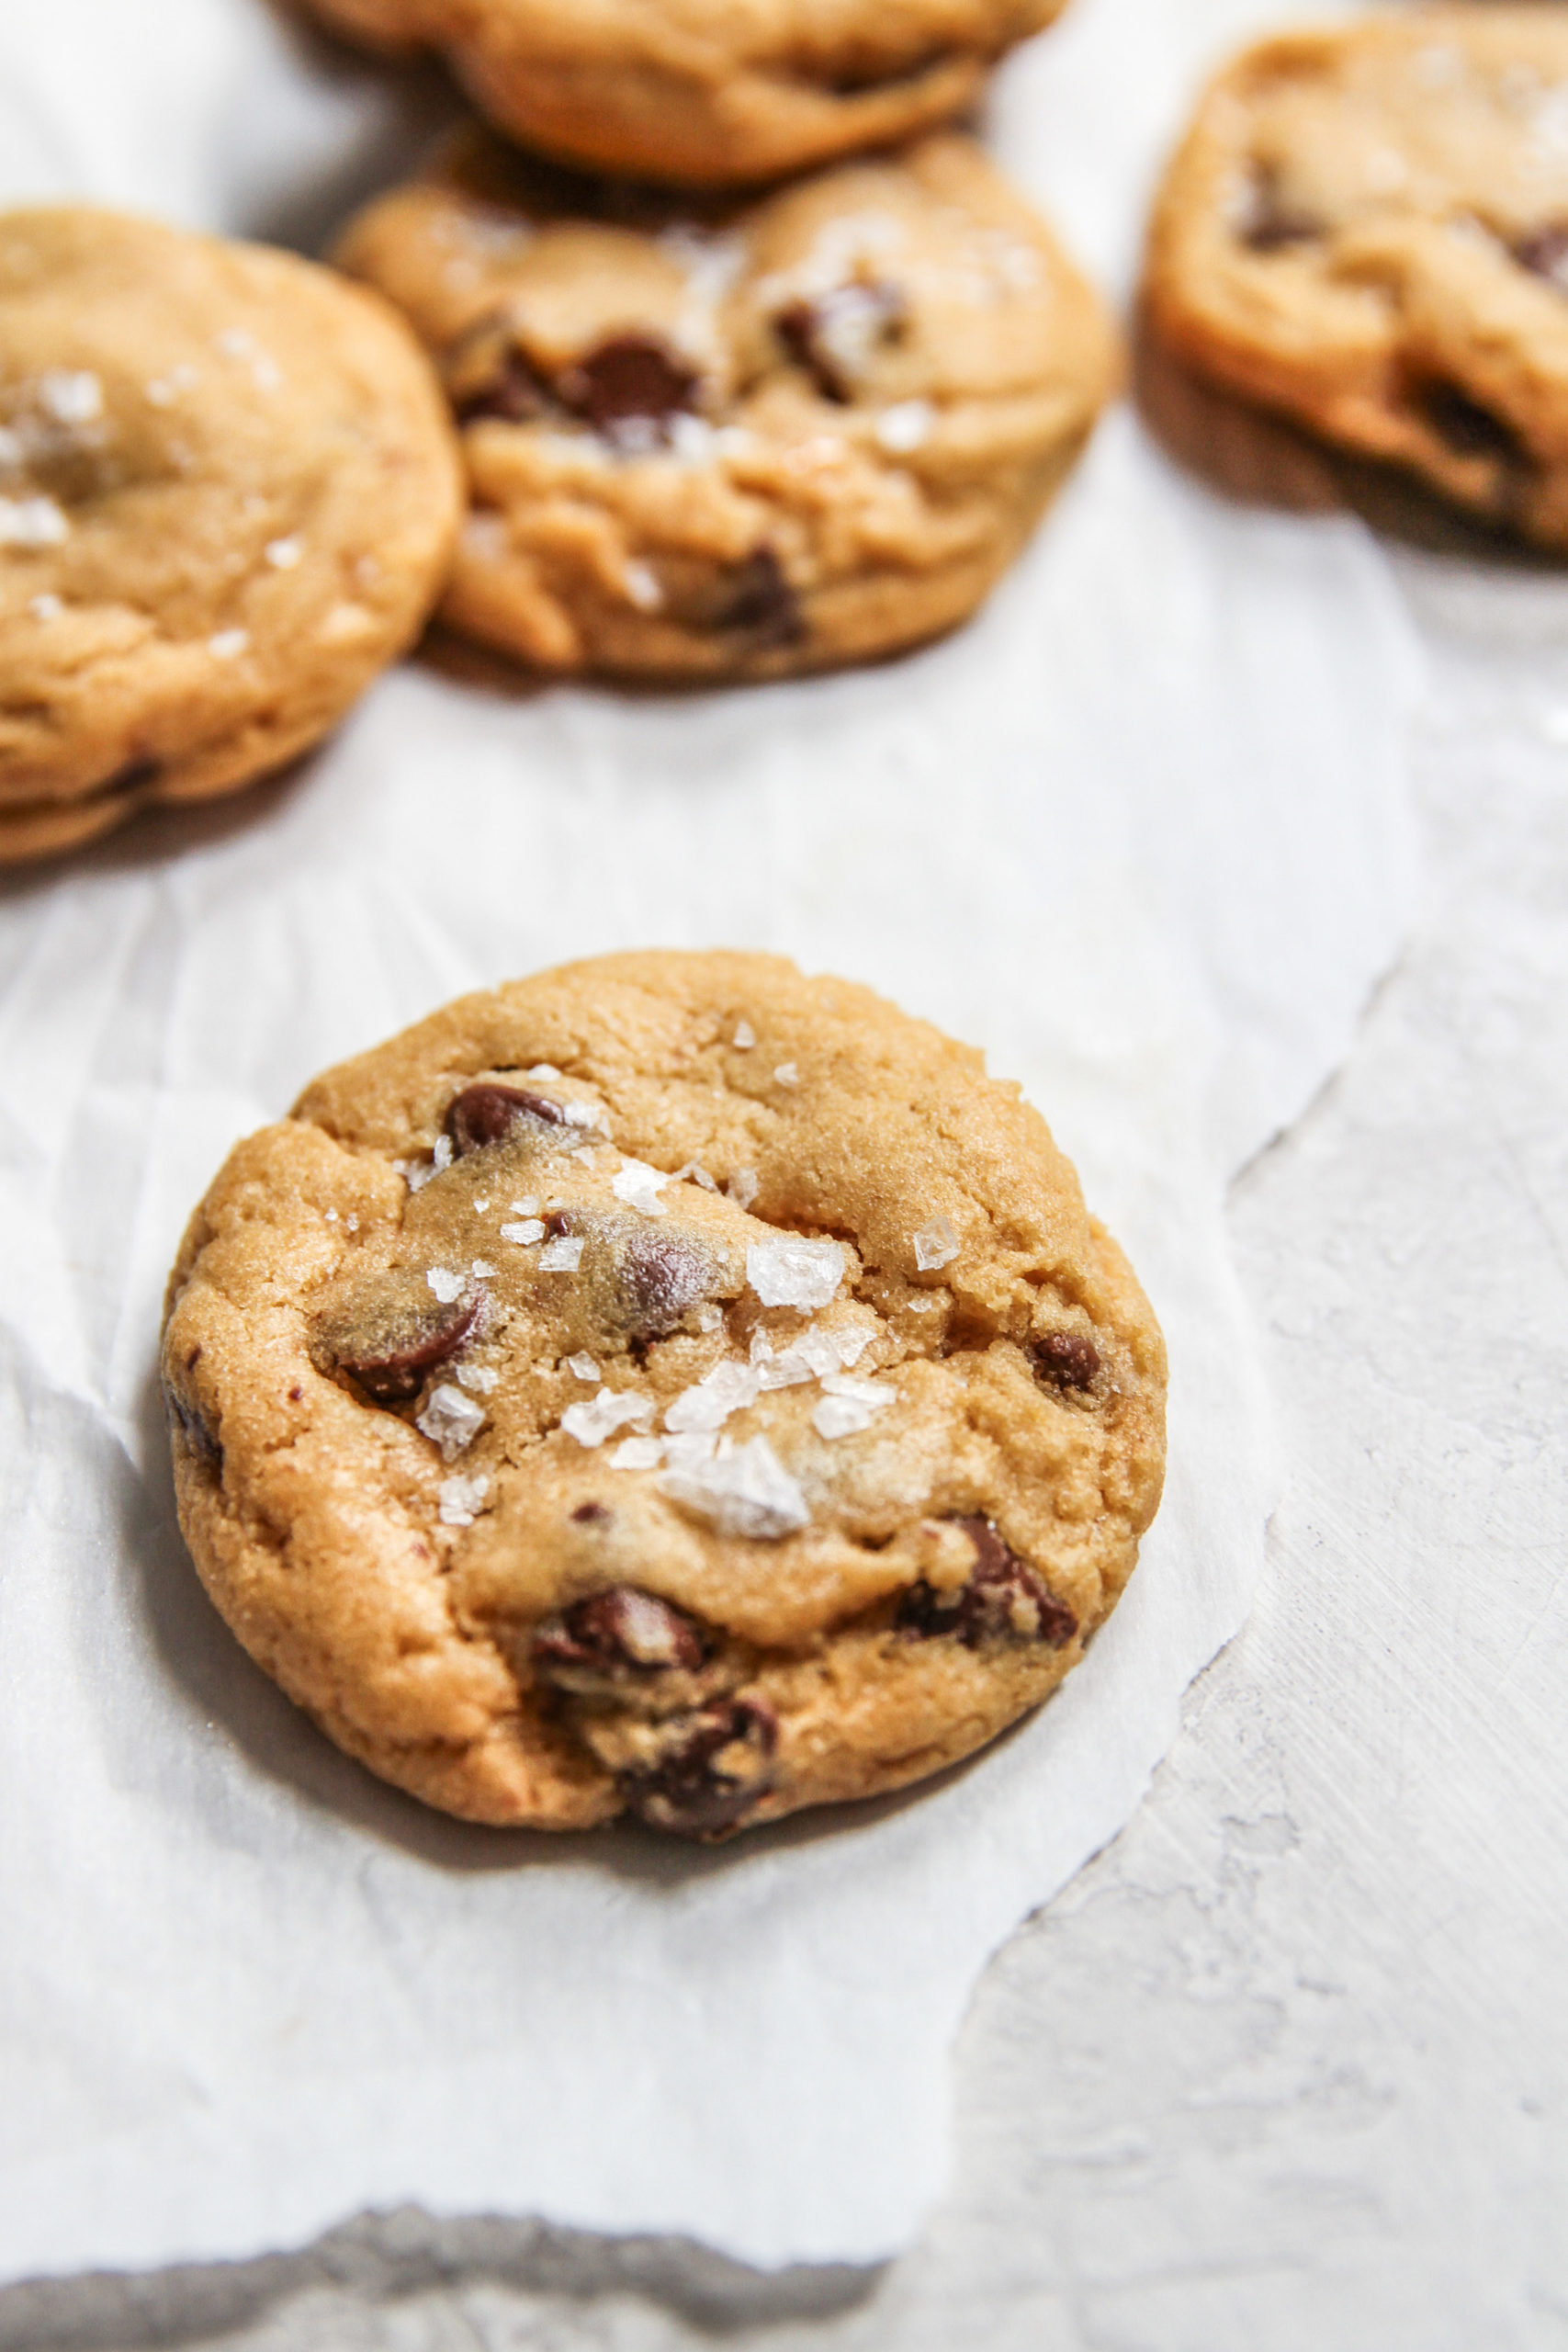 The most delicious salted caramel chocolate chip cookies